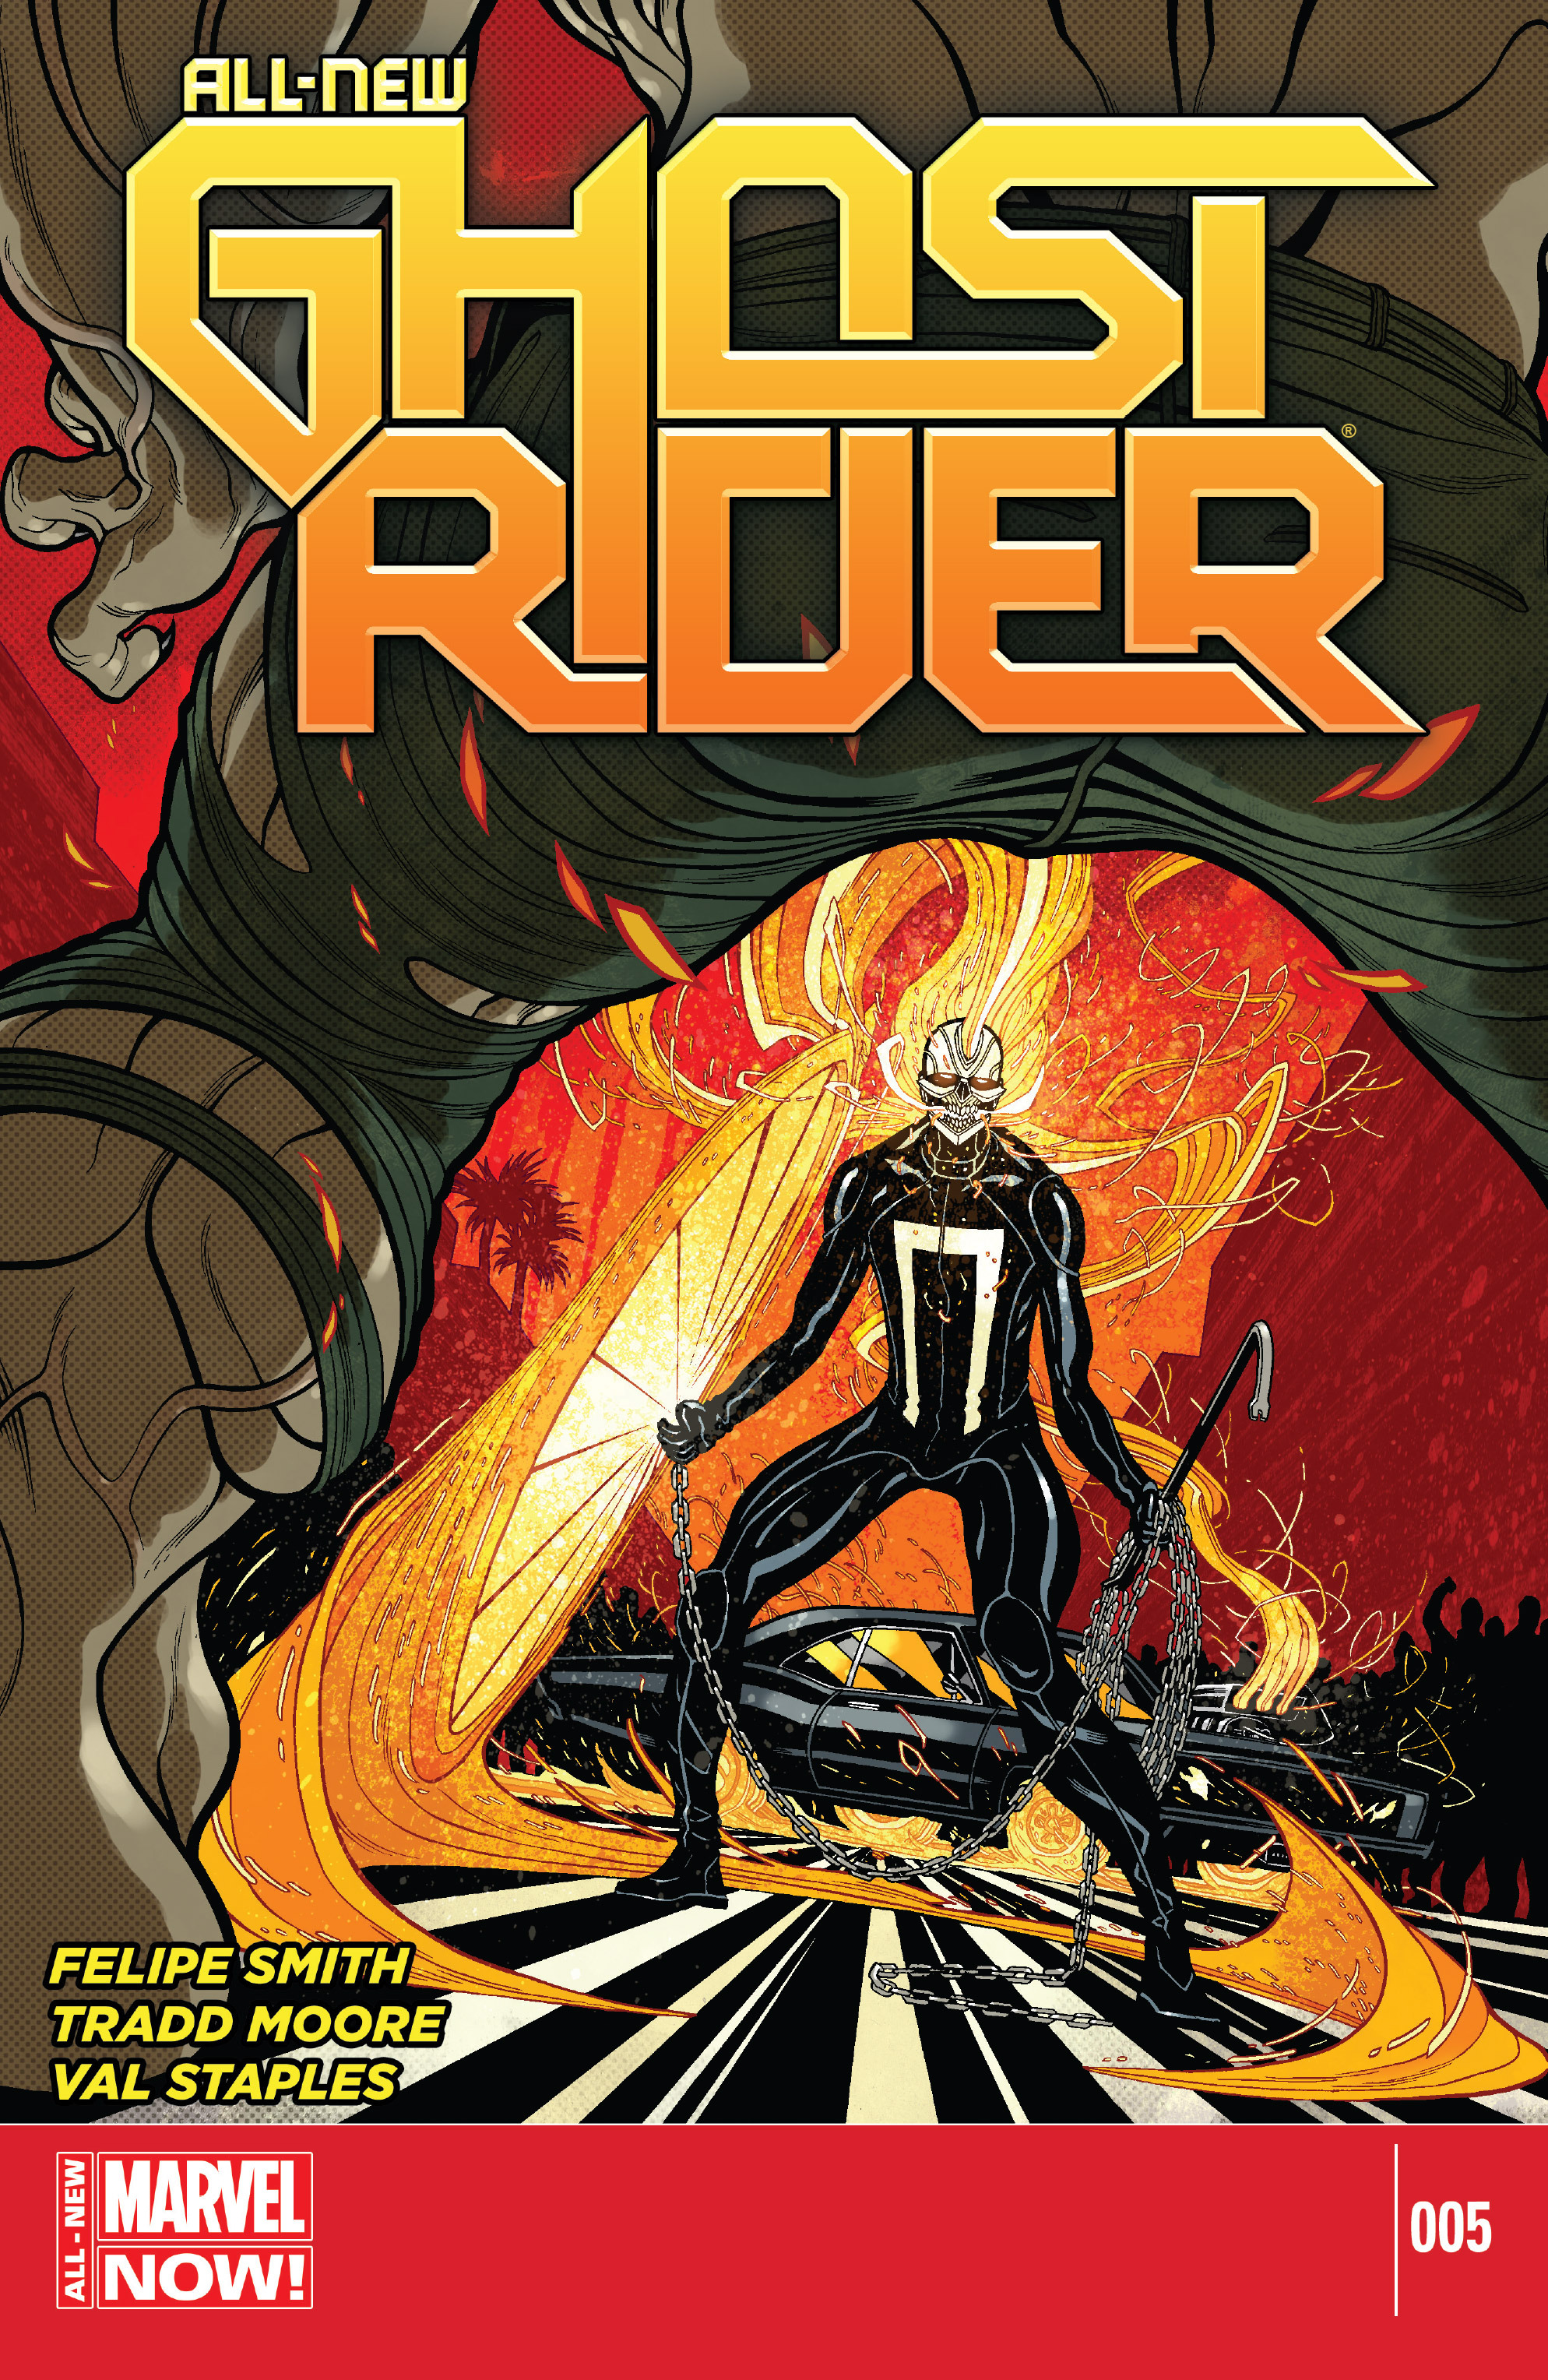 Read online All-New Ghost Rider comic -  Issue #5 - 1